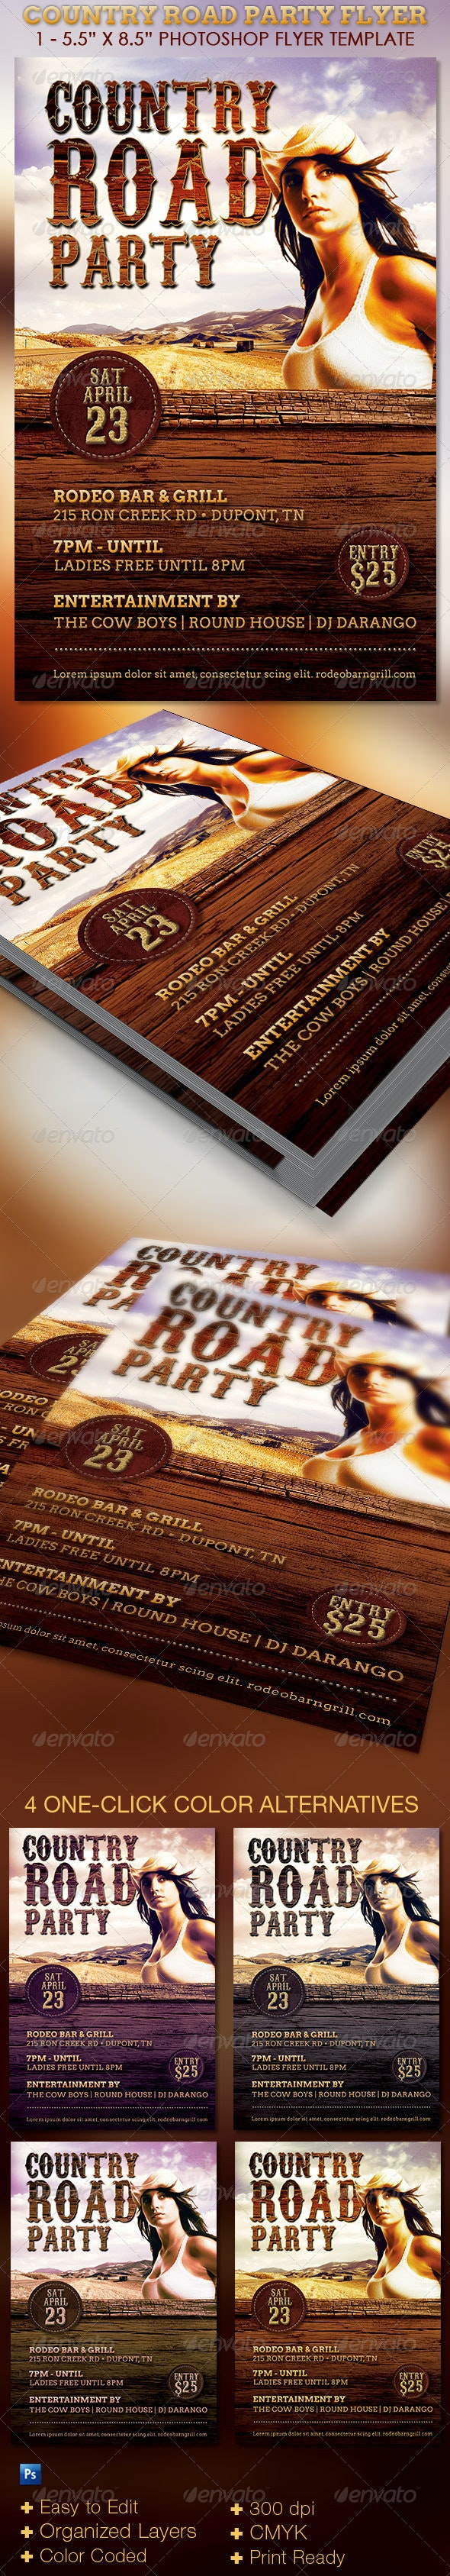 Country Road Party Flyer Template - Clubs & Parties Events